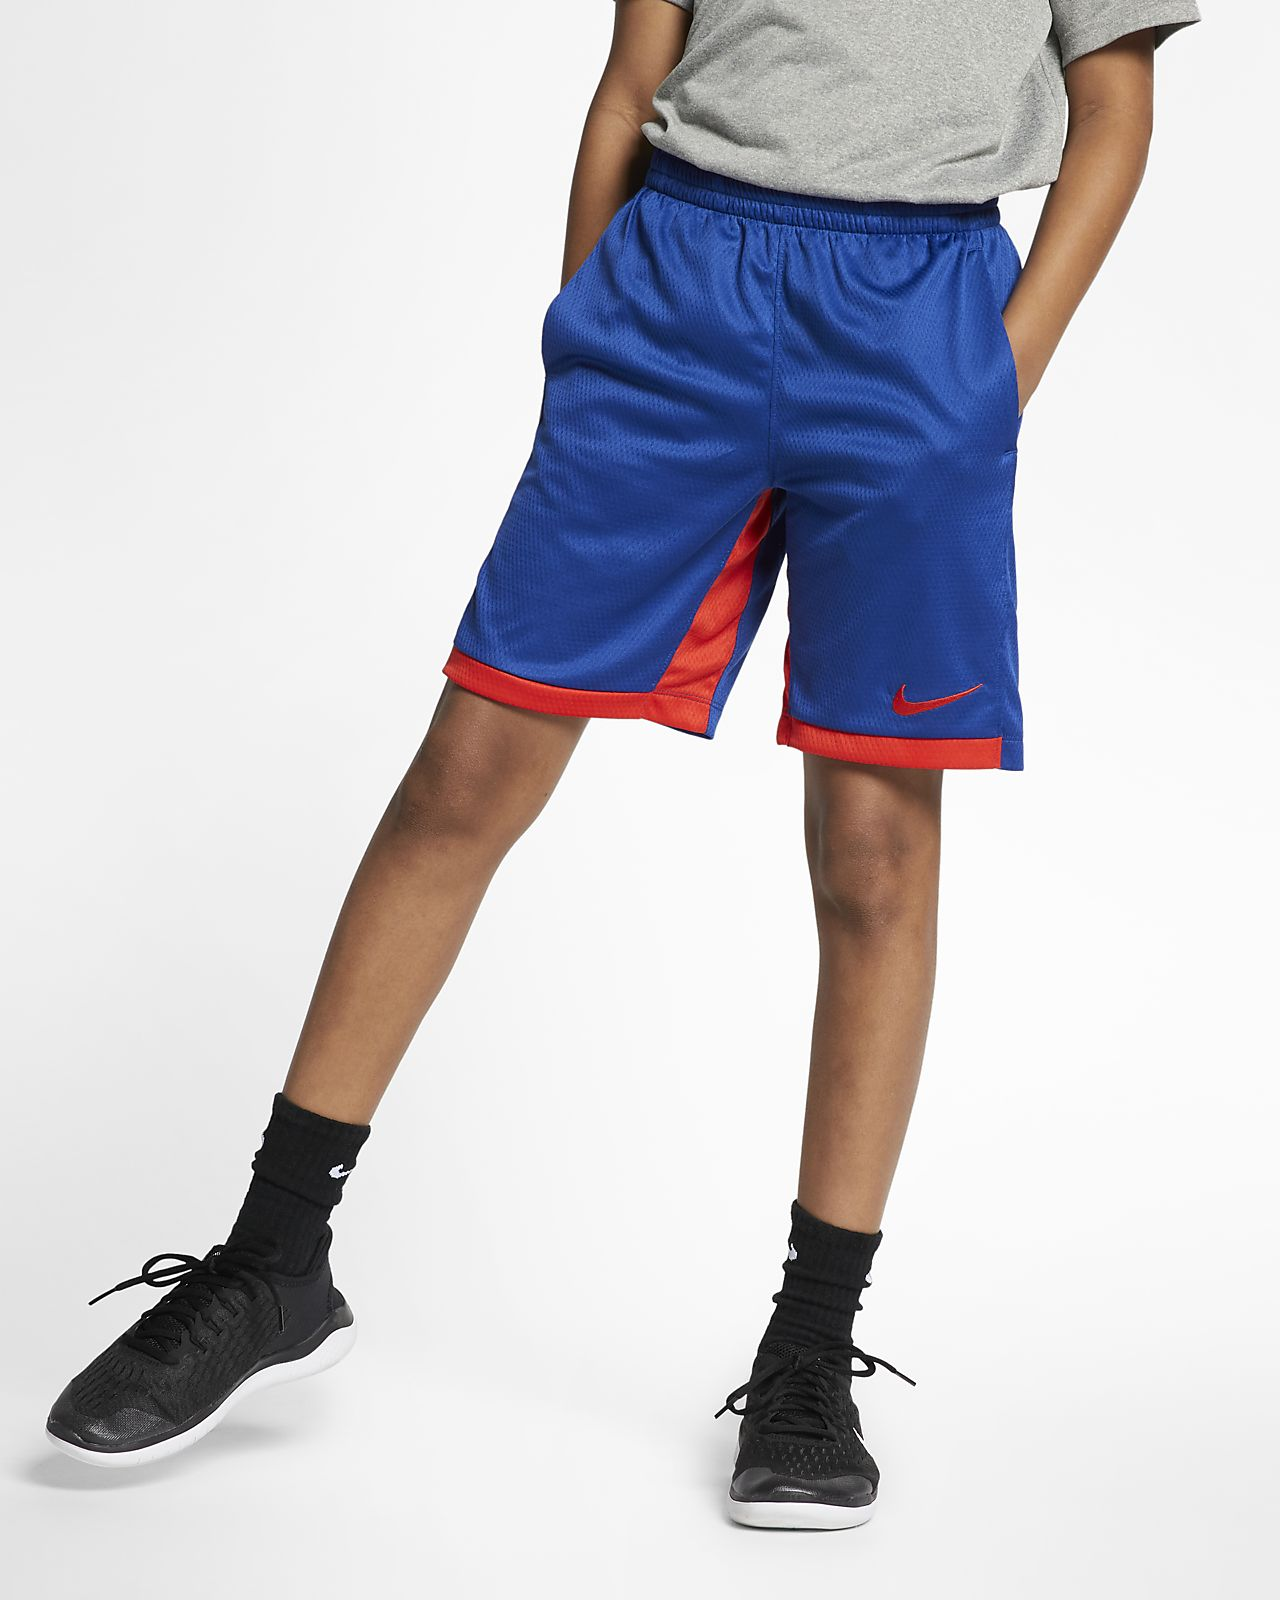 dd28b5d976a9a Nike Dri-FIT Trophy Big Kids' (Boys') Training Shorts. Nike.com